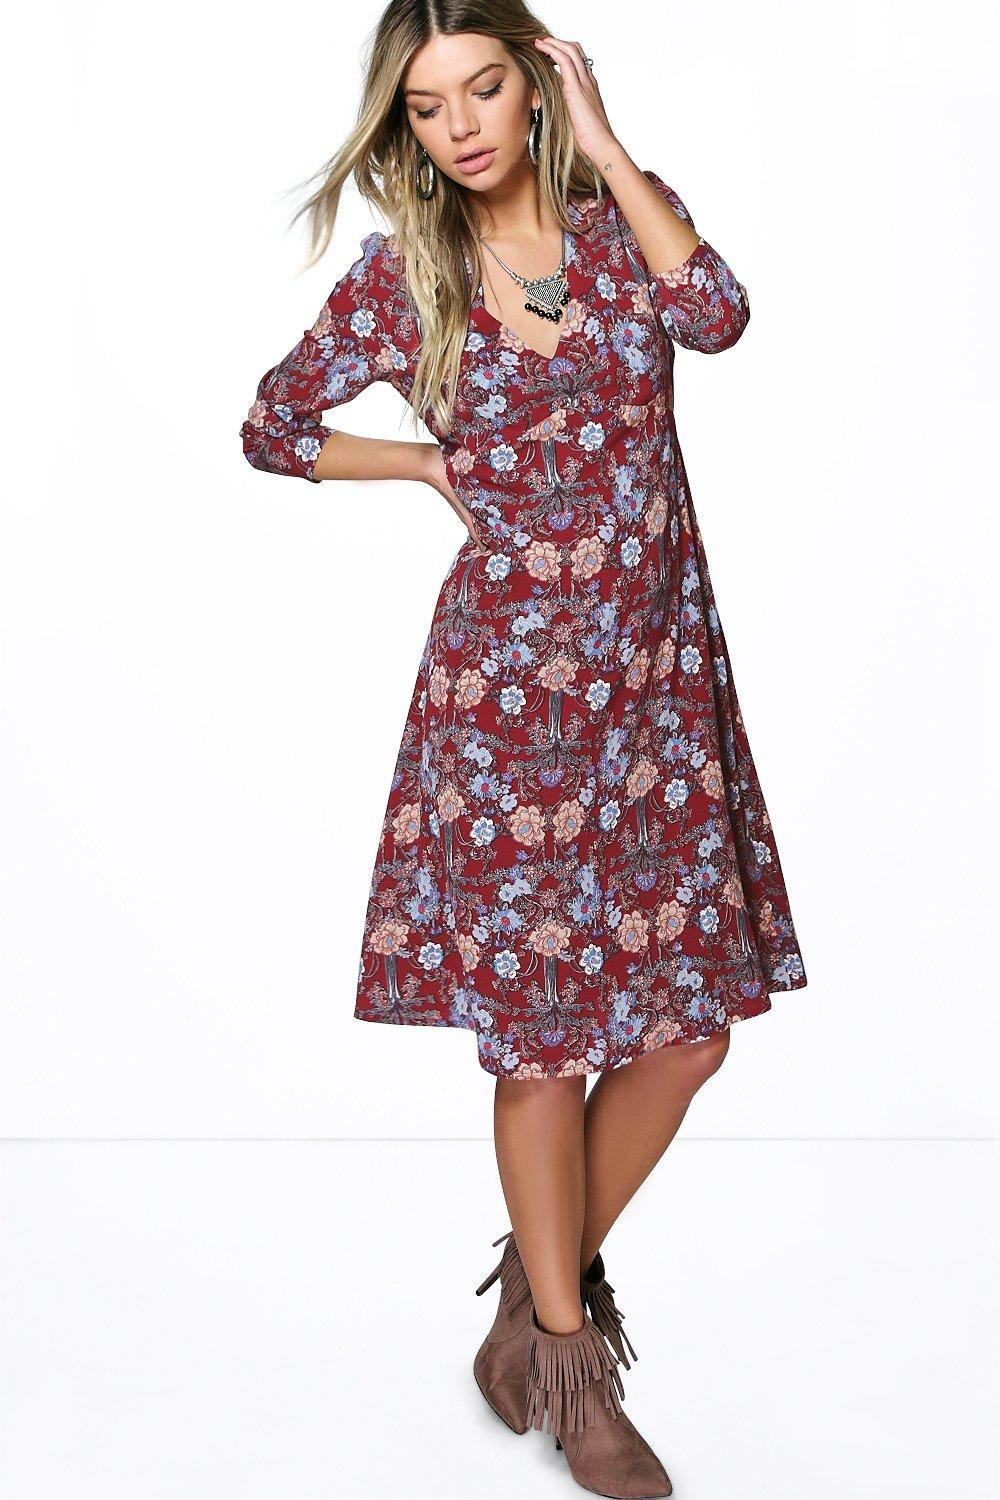 Floral V Neck Gypsy Dress Berry - style: shift; neckline: v-neck; secondary colour: pale blue; occasions: casual; length: on the knee; fit: body skimming; fibres: polyester/polyamide - 100%; sleeve length: 3/4 length; sleeve style: standard; pattern type: fabric; pattern: florals; texture group: other - light to midweight; predominant colour: raspberry; multicoloured: multicoloured; season: s/s 2016; wardrobe: highlight